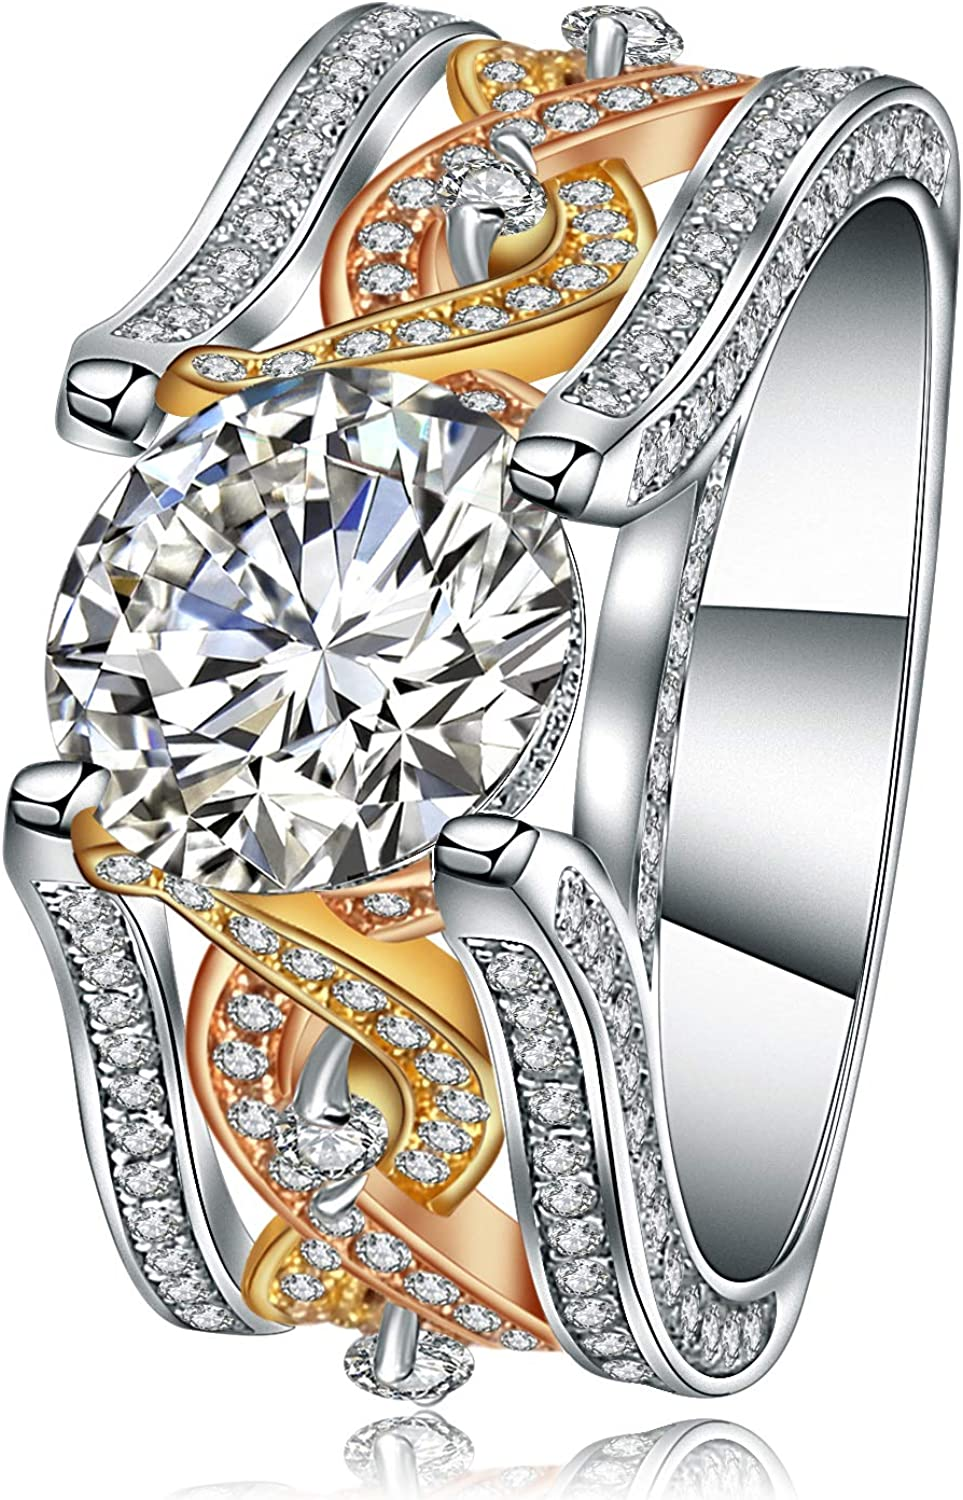 10.5Ct Round Shape 8.5mm Zircon Eng 67% OFF of fixed price excellence 925 Sterling Silver Gemstone